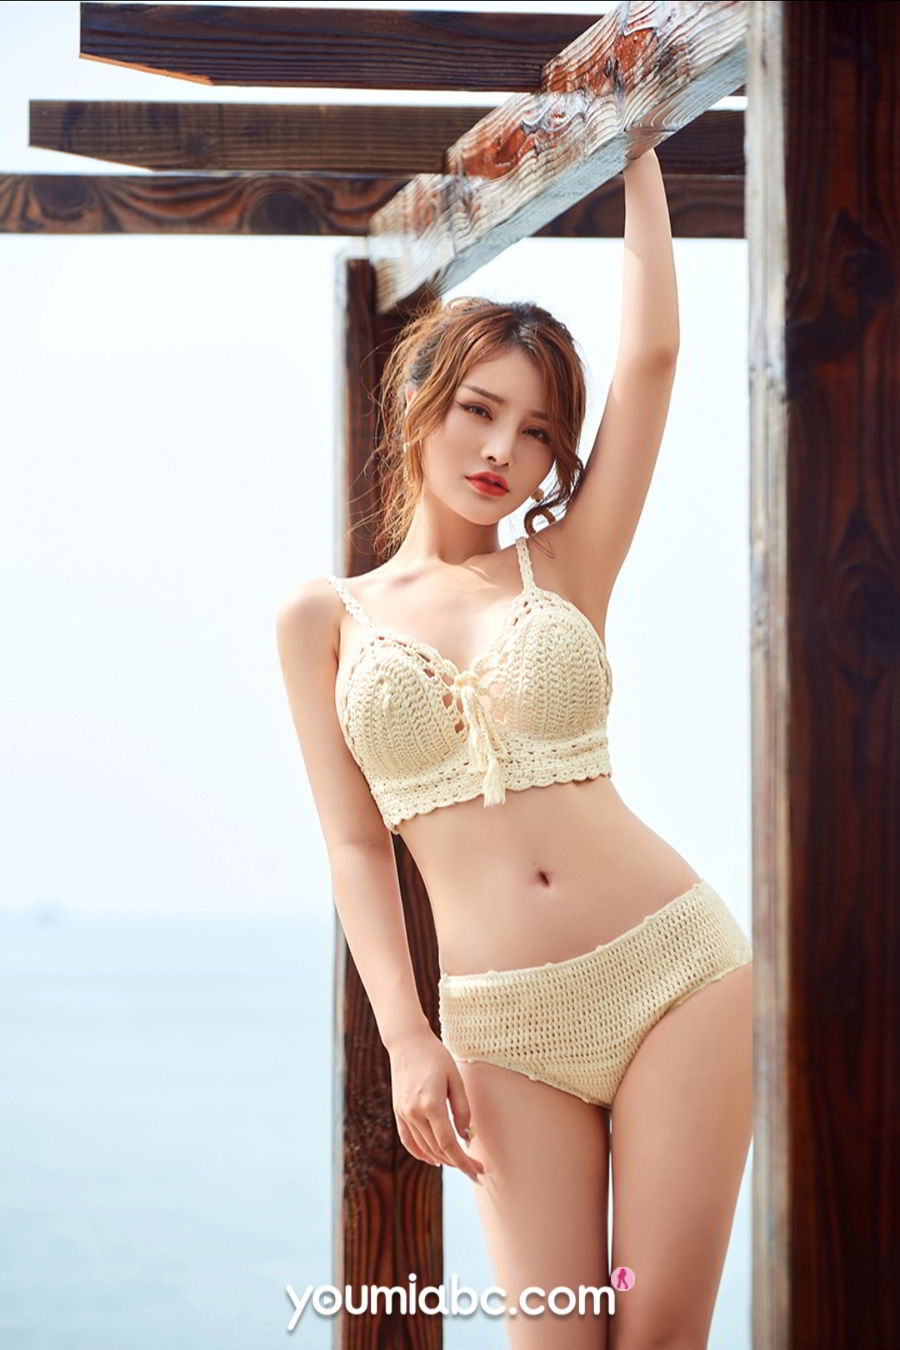 [Youmei] Vol.461 Gentle against the light